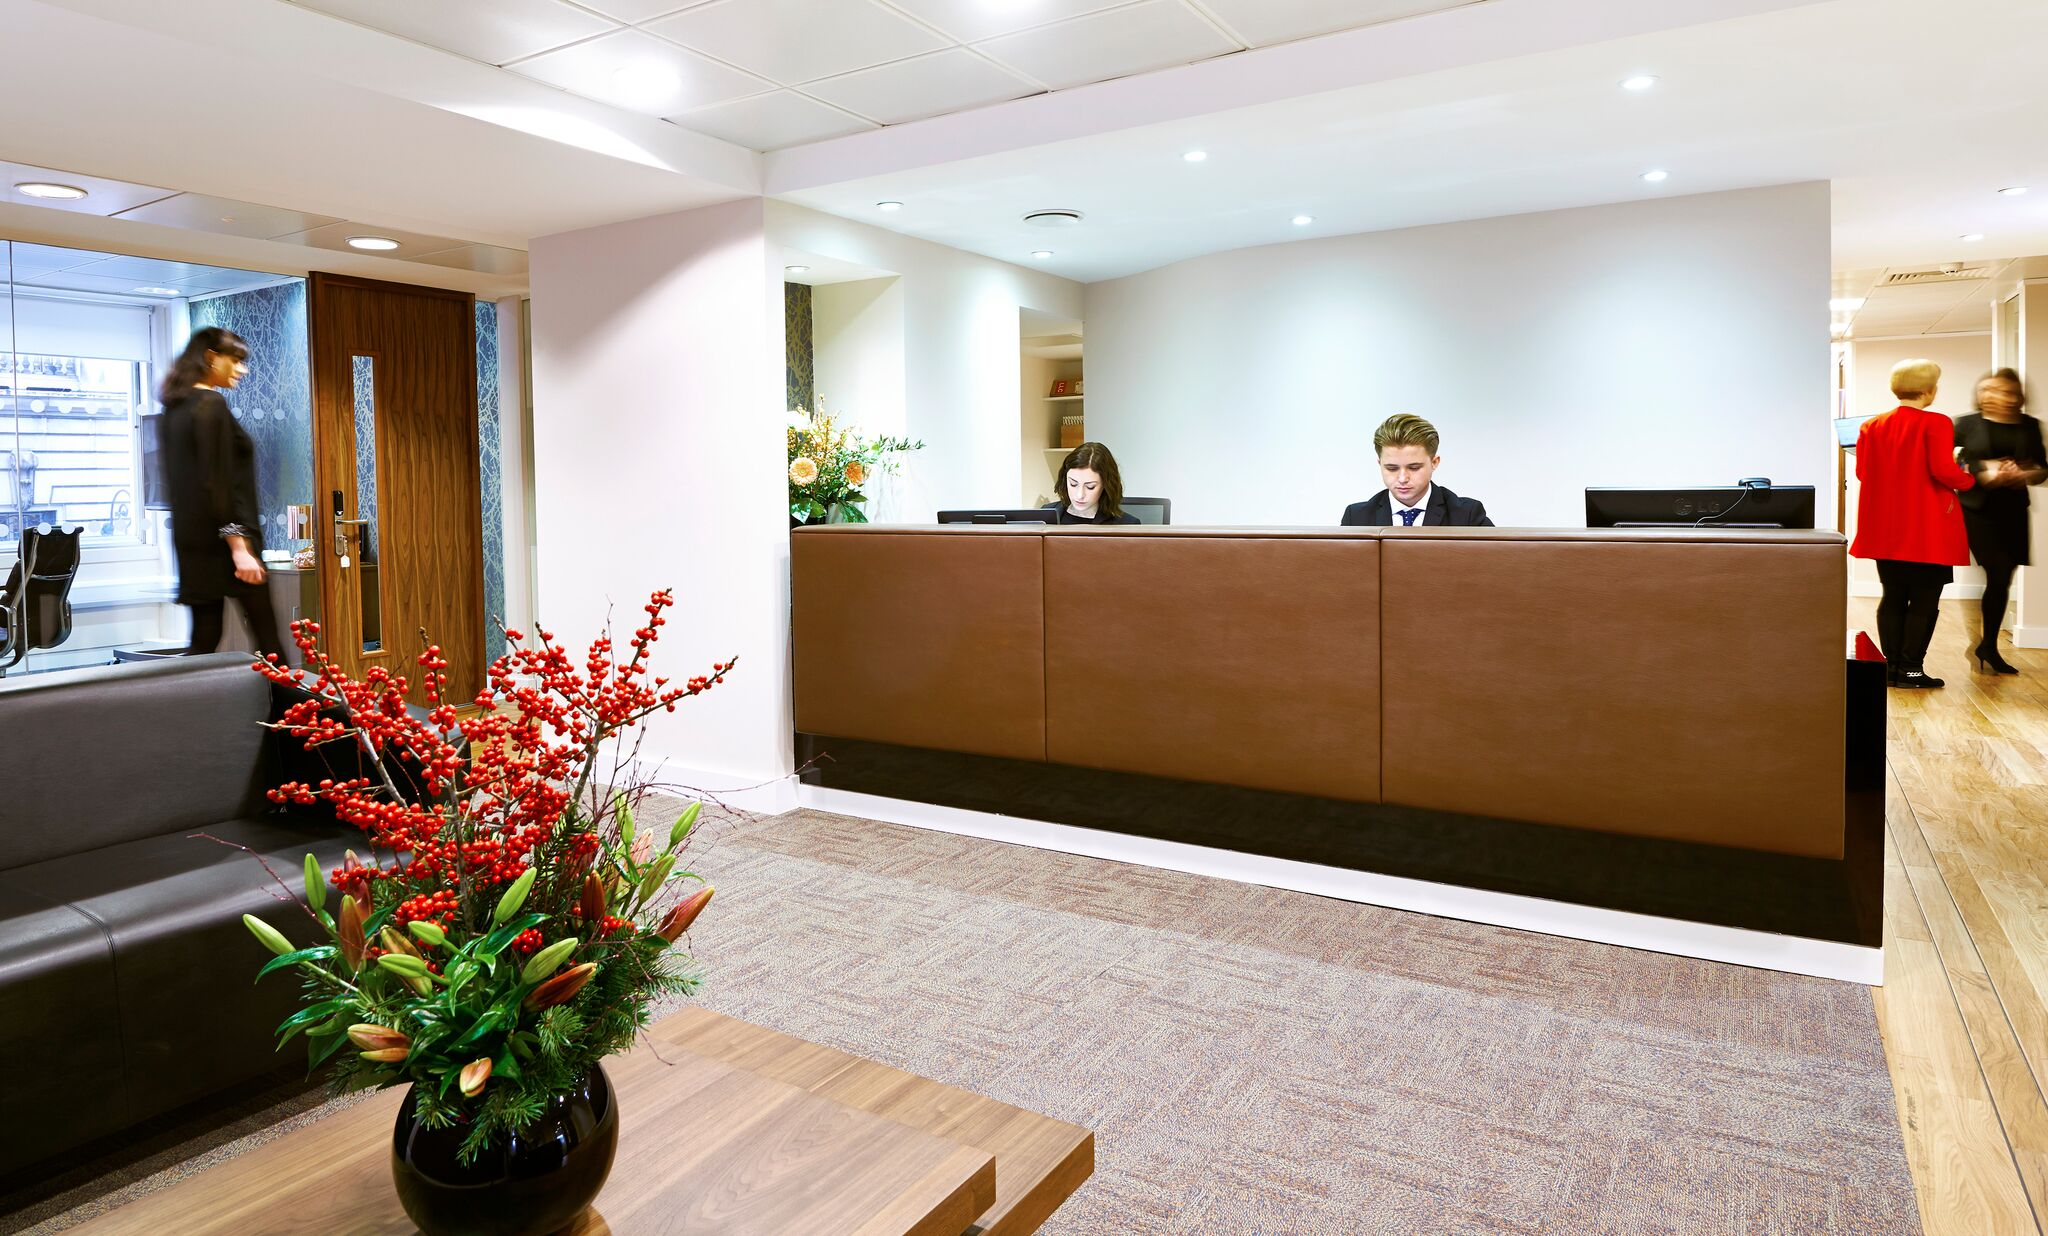 Bourne Office Space - 22A St James's Square, SW1 - Pall Mall